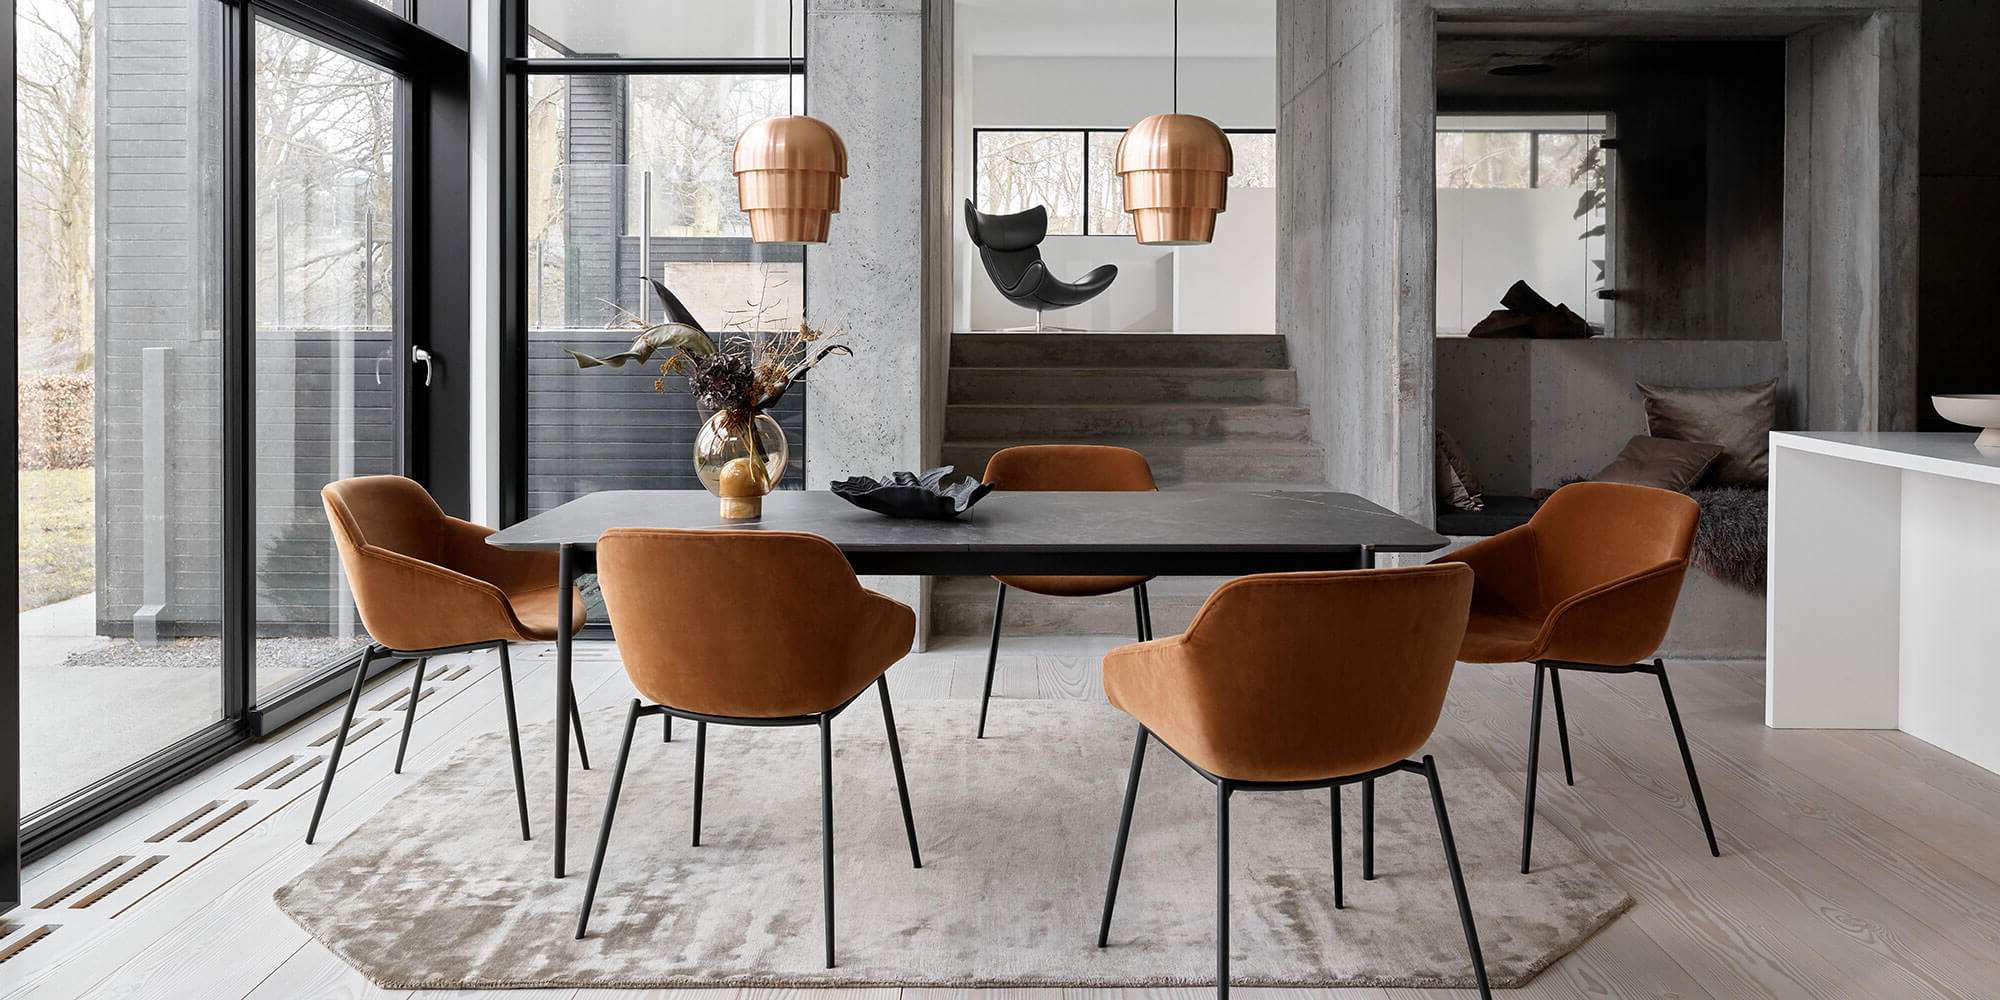 Transitional 8 Seating Rectangular Helsinki Dining Tables Inside Latest Contemporary Danish Furniture (Gallery 14 of 30)